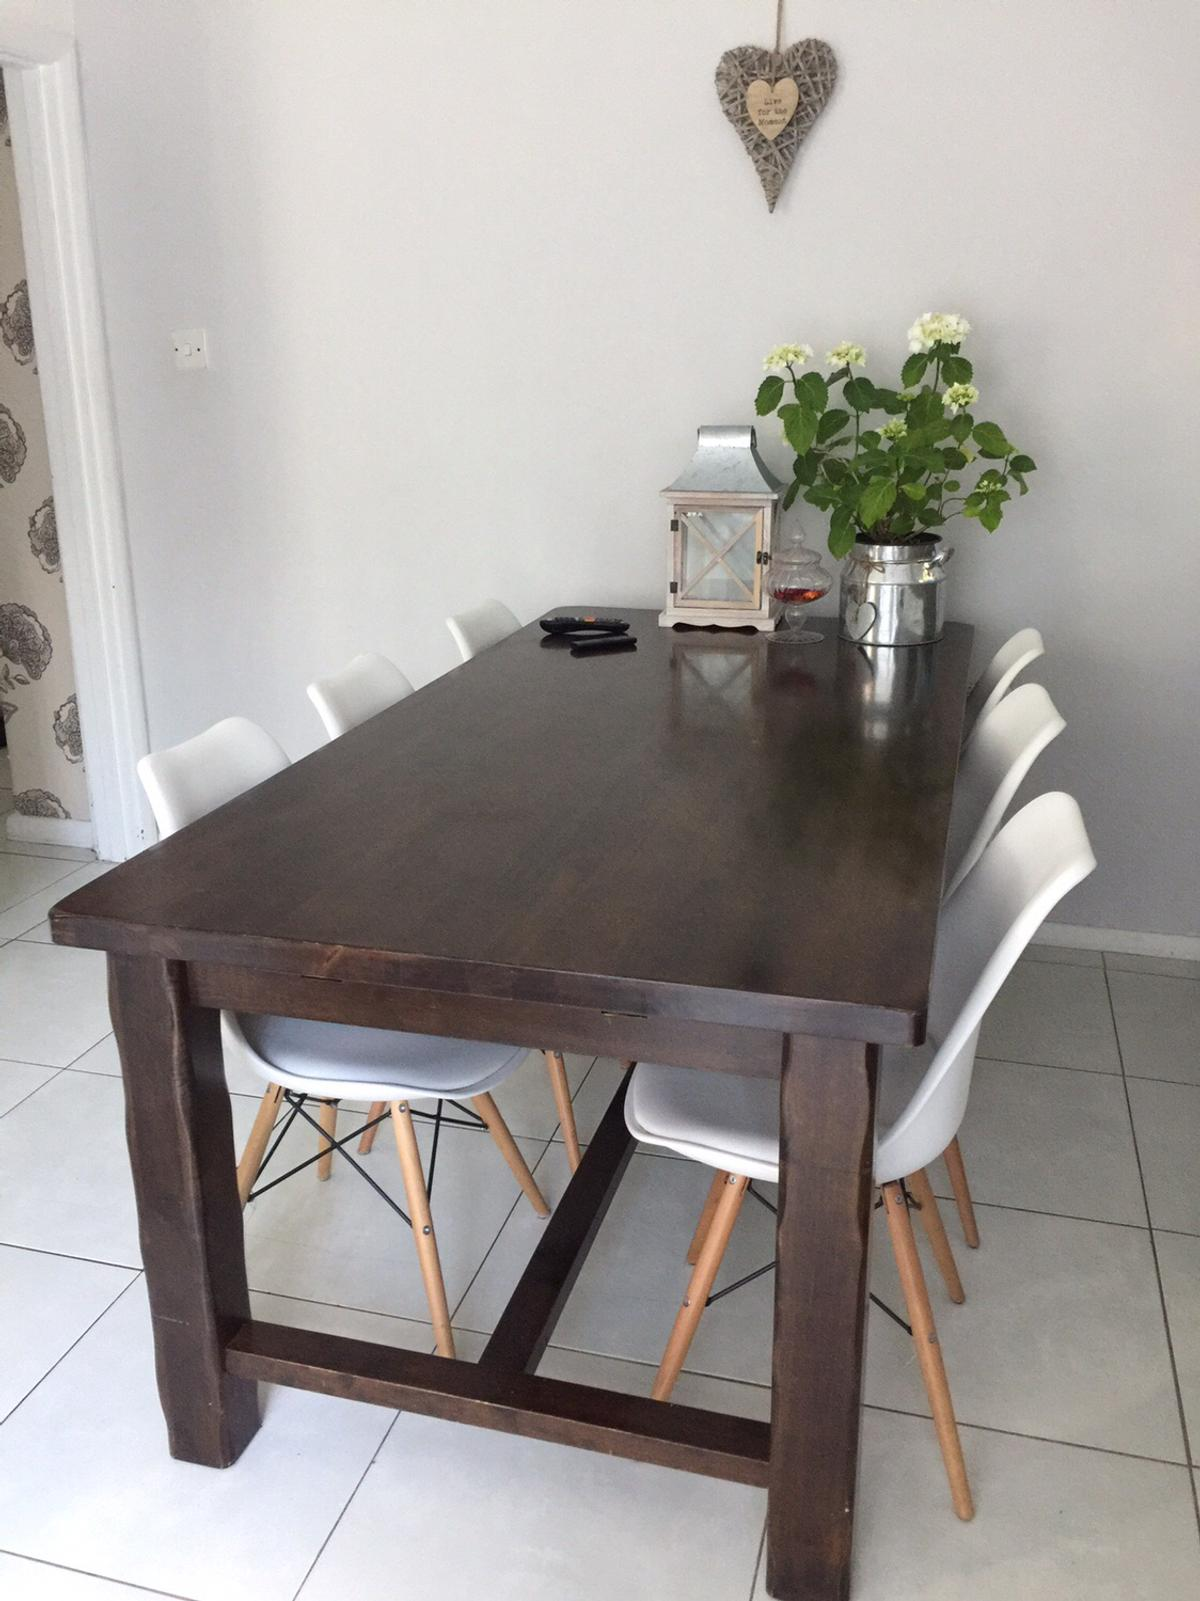 Prime Mango Wood Extendable Dining Table In Sw16 London Fur 80 00 Download Free Architecture Designs Scobabritishbridgeorg